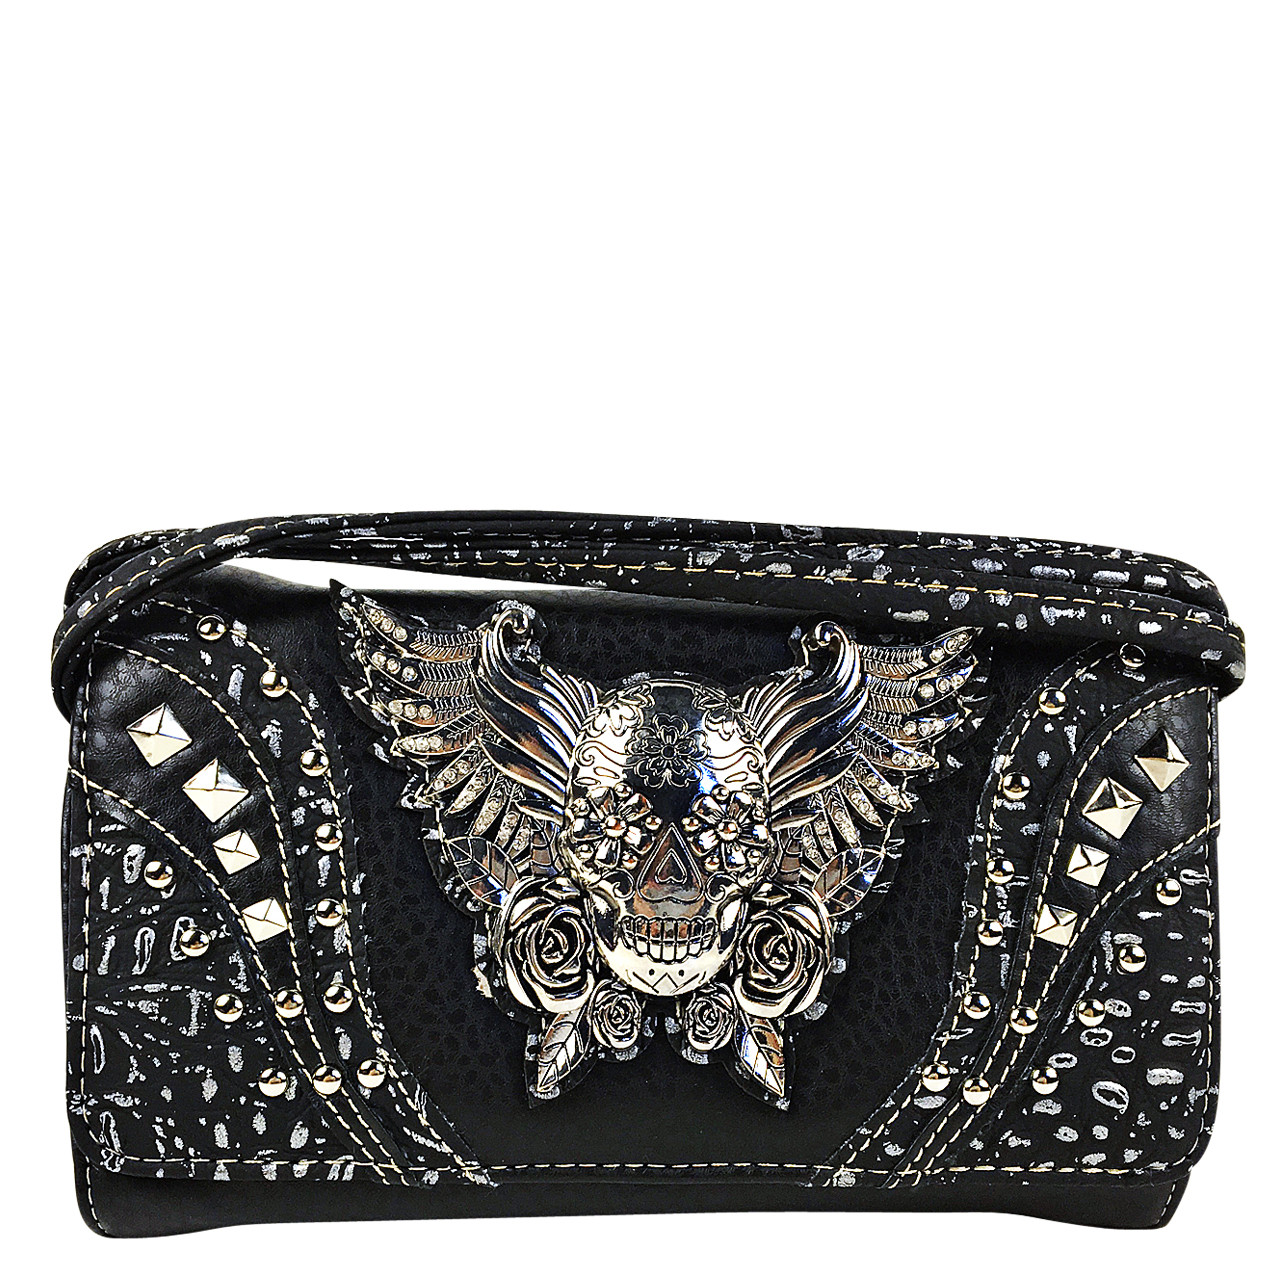 BLACK RHINESTONE STUDDED SKULL WITH WINGS LOOK CLUTCH TRIFOLD WALLET